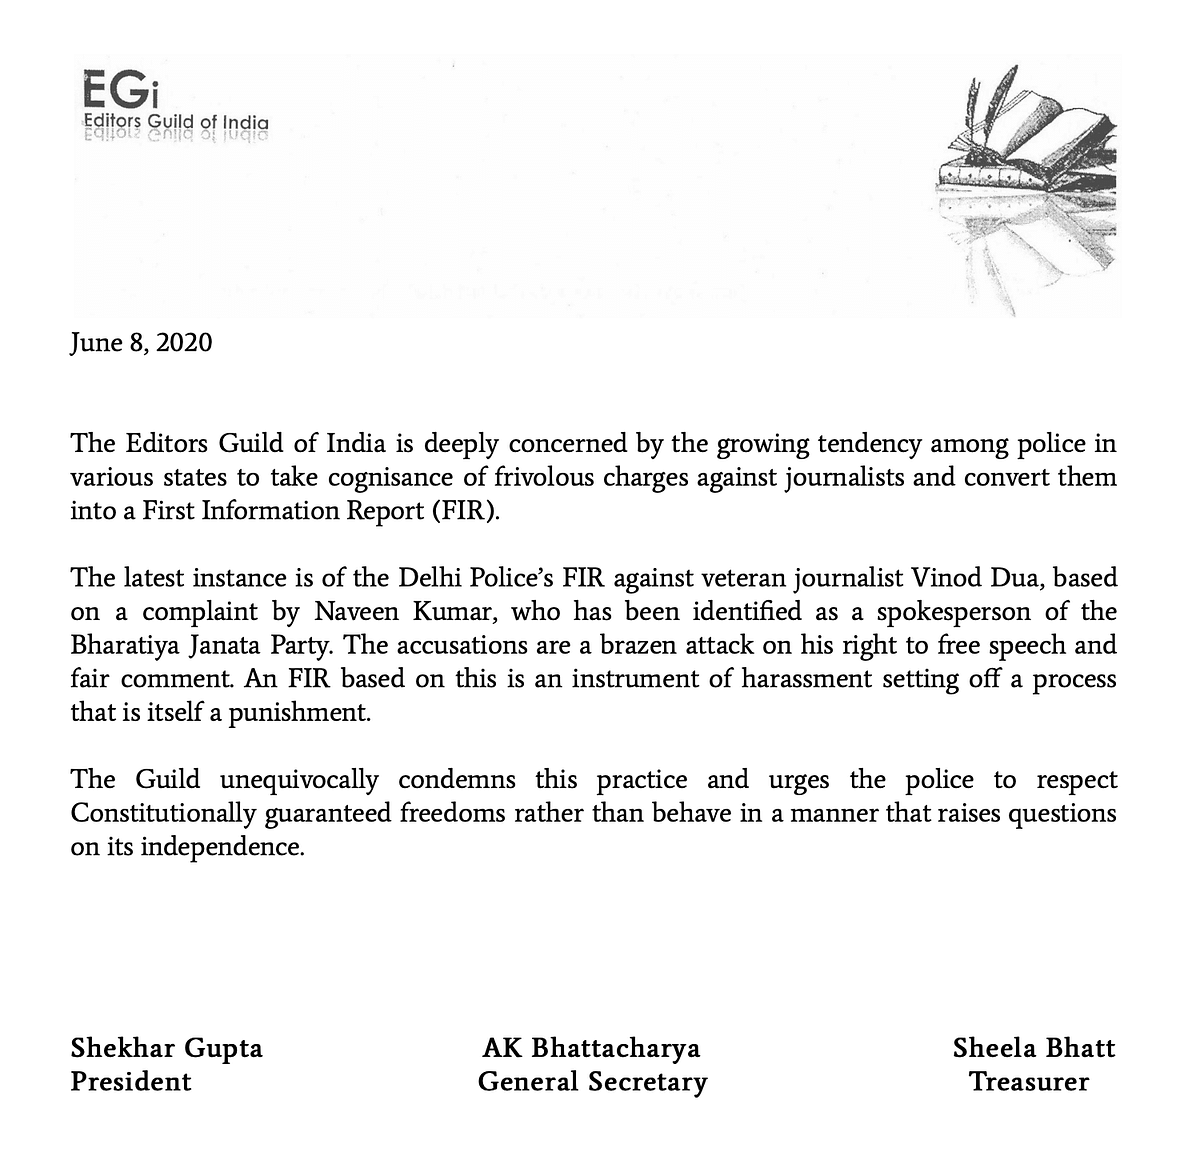 Statement by The Editors Guild of India.